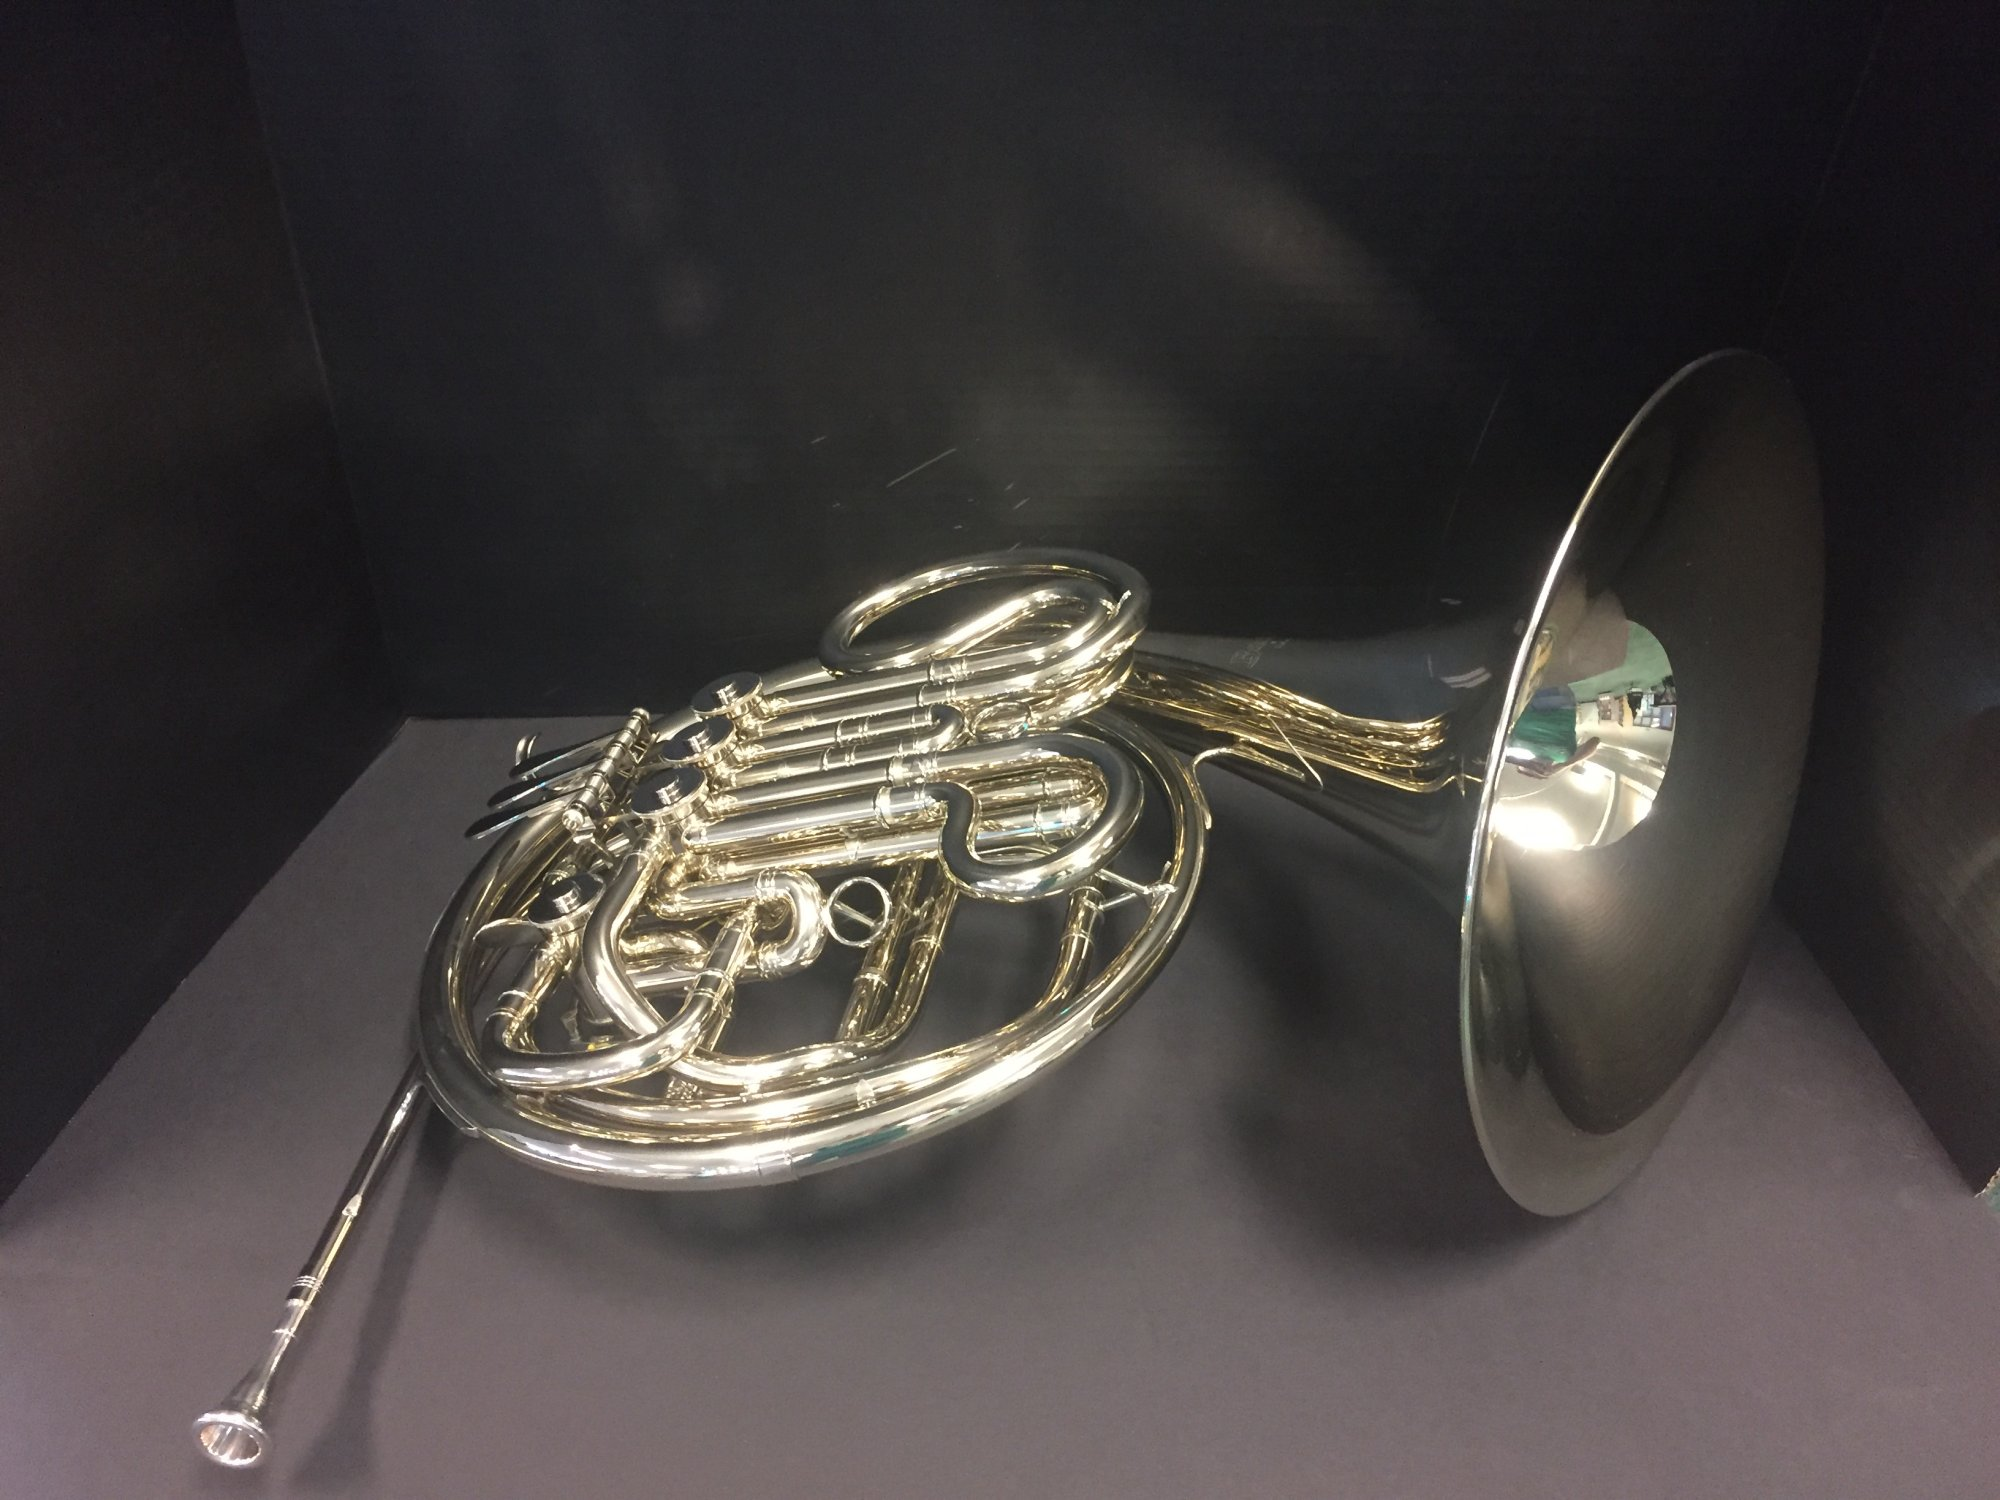 Bach B 1112 Double French horn